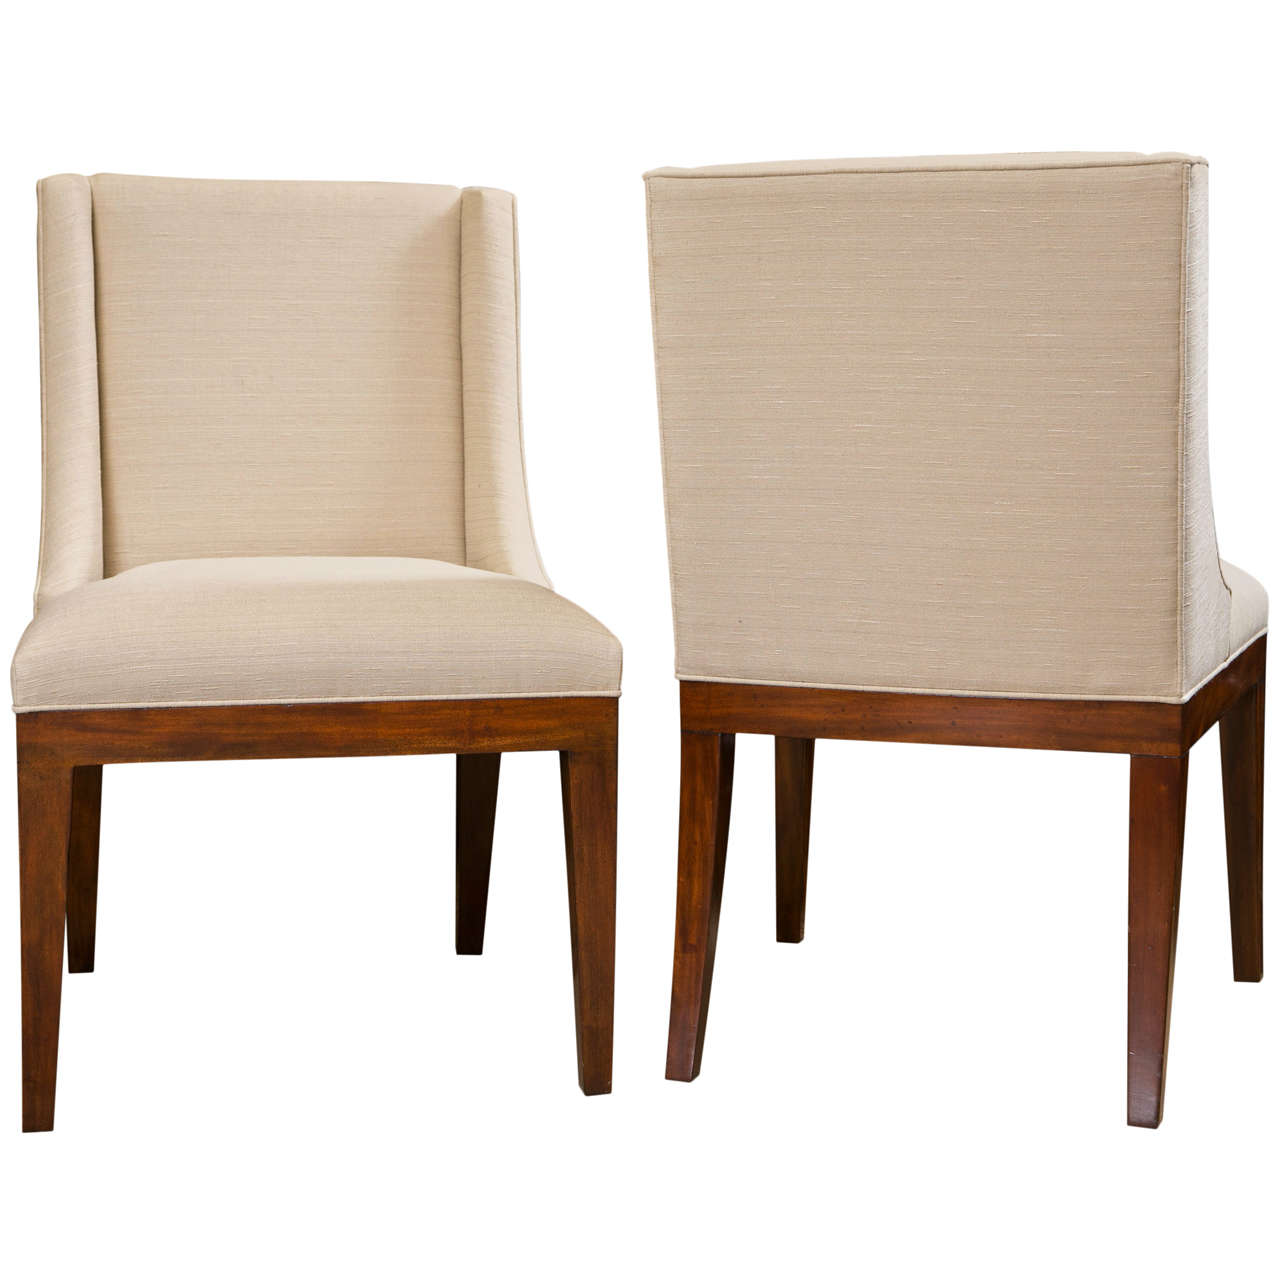 Set of 6 classic modern upholstered dining chairs at 1stdibs for Designer dining room chairs